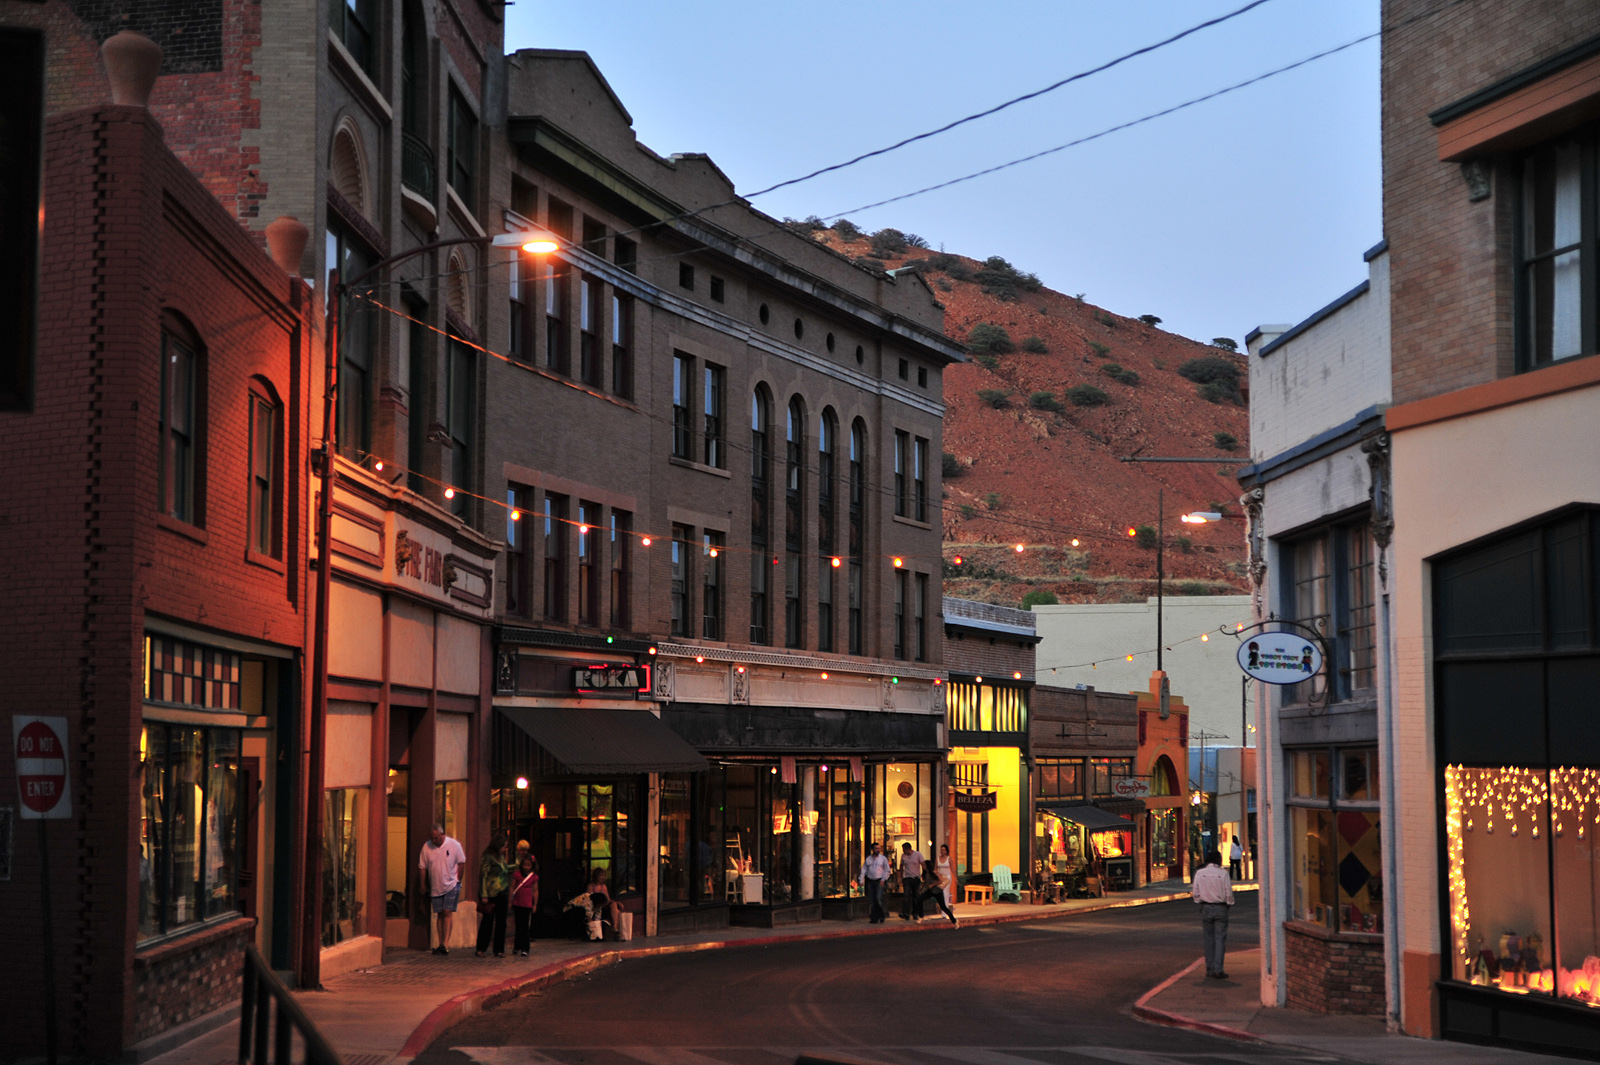 Bisbee, AZ courtesy of www.bisbeeaz85603.com